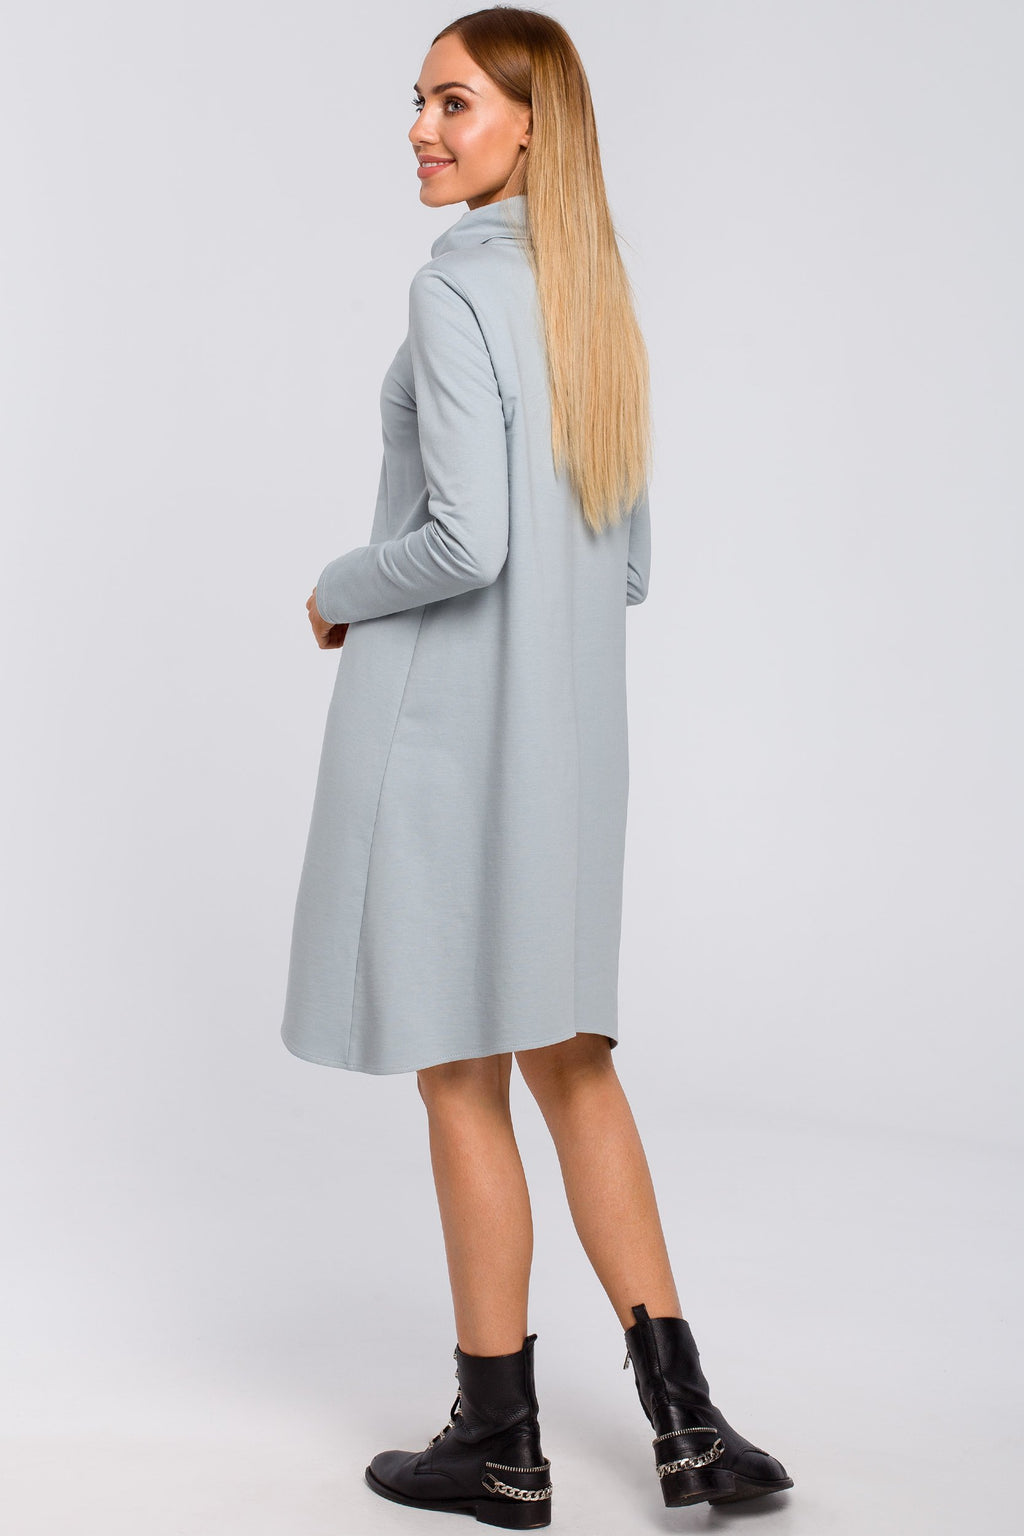 Dove Grey Cotton Turtleneck Trapeze Dress - So Chic Boutique